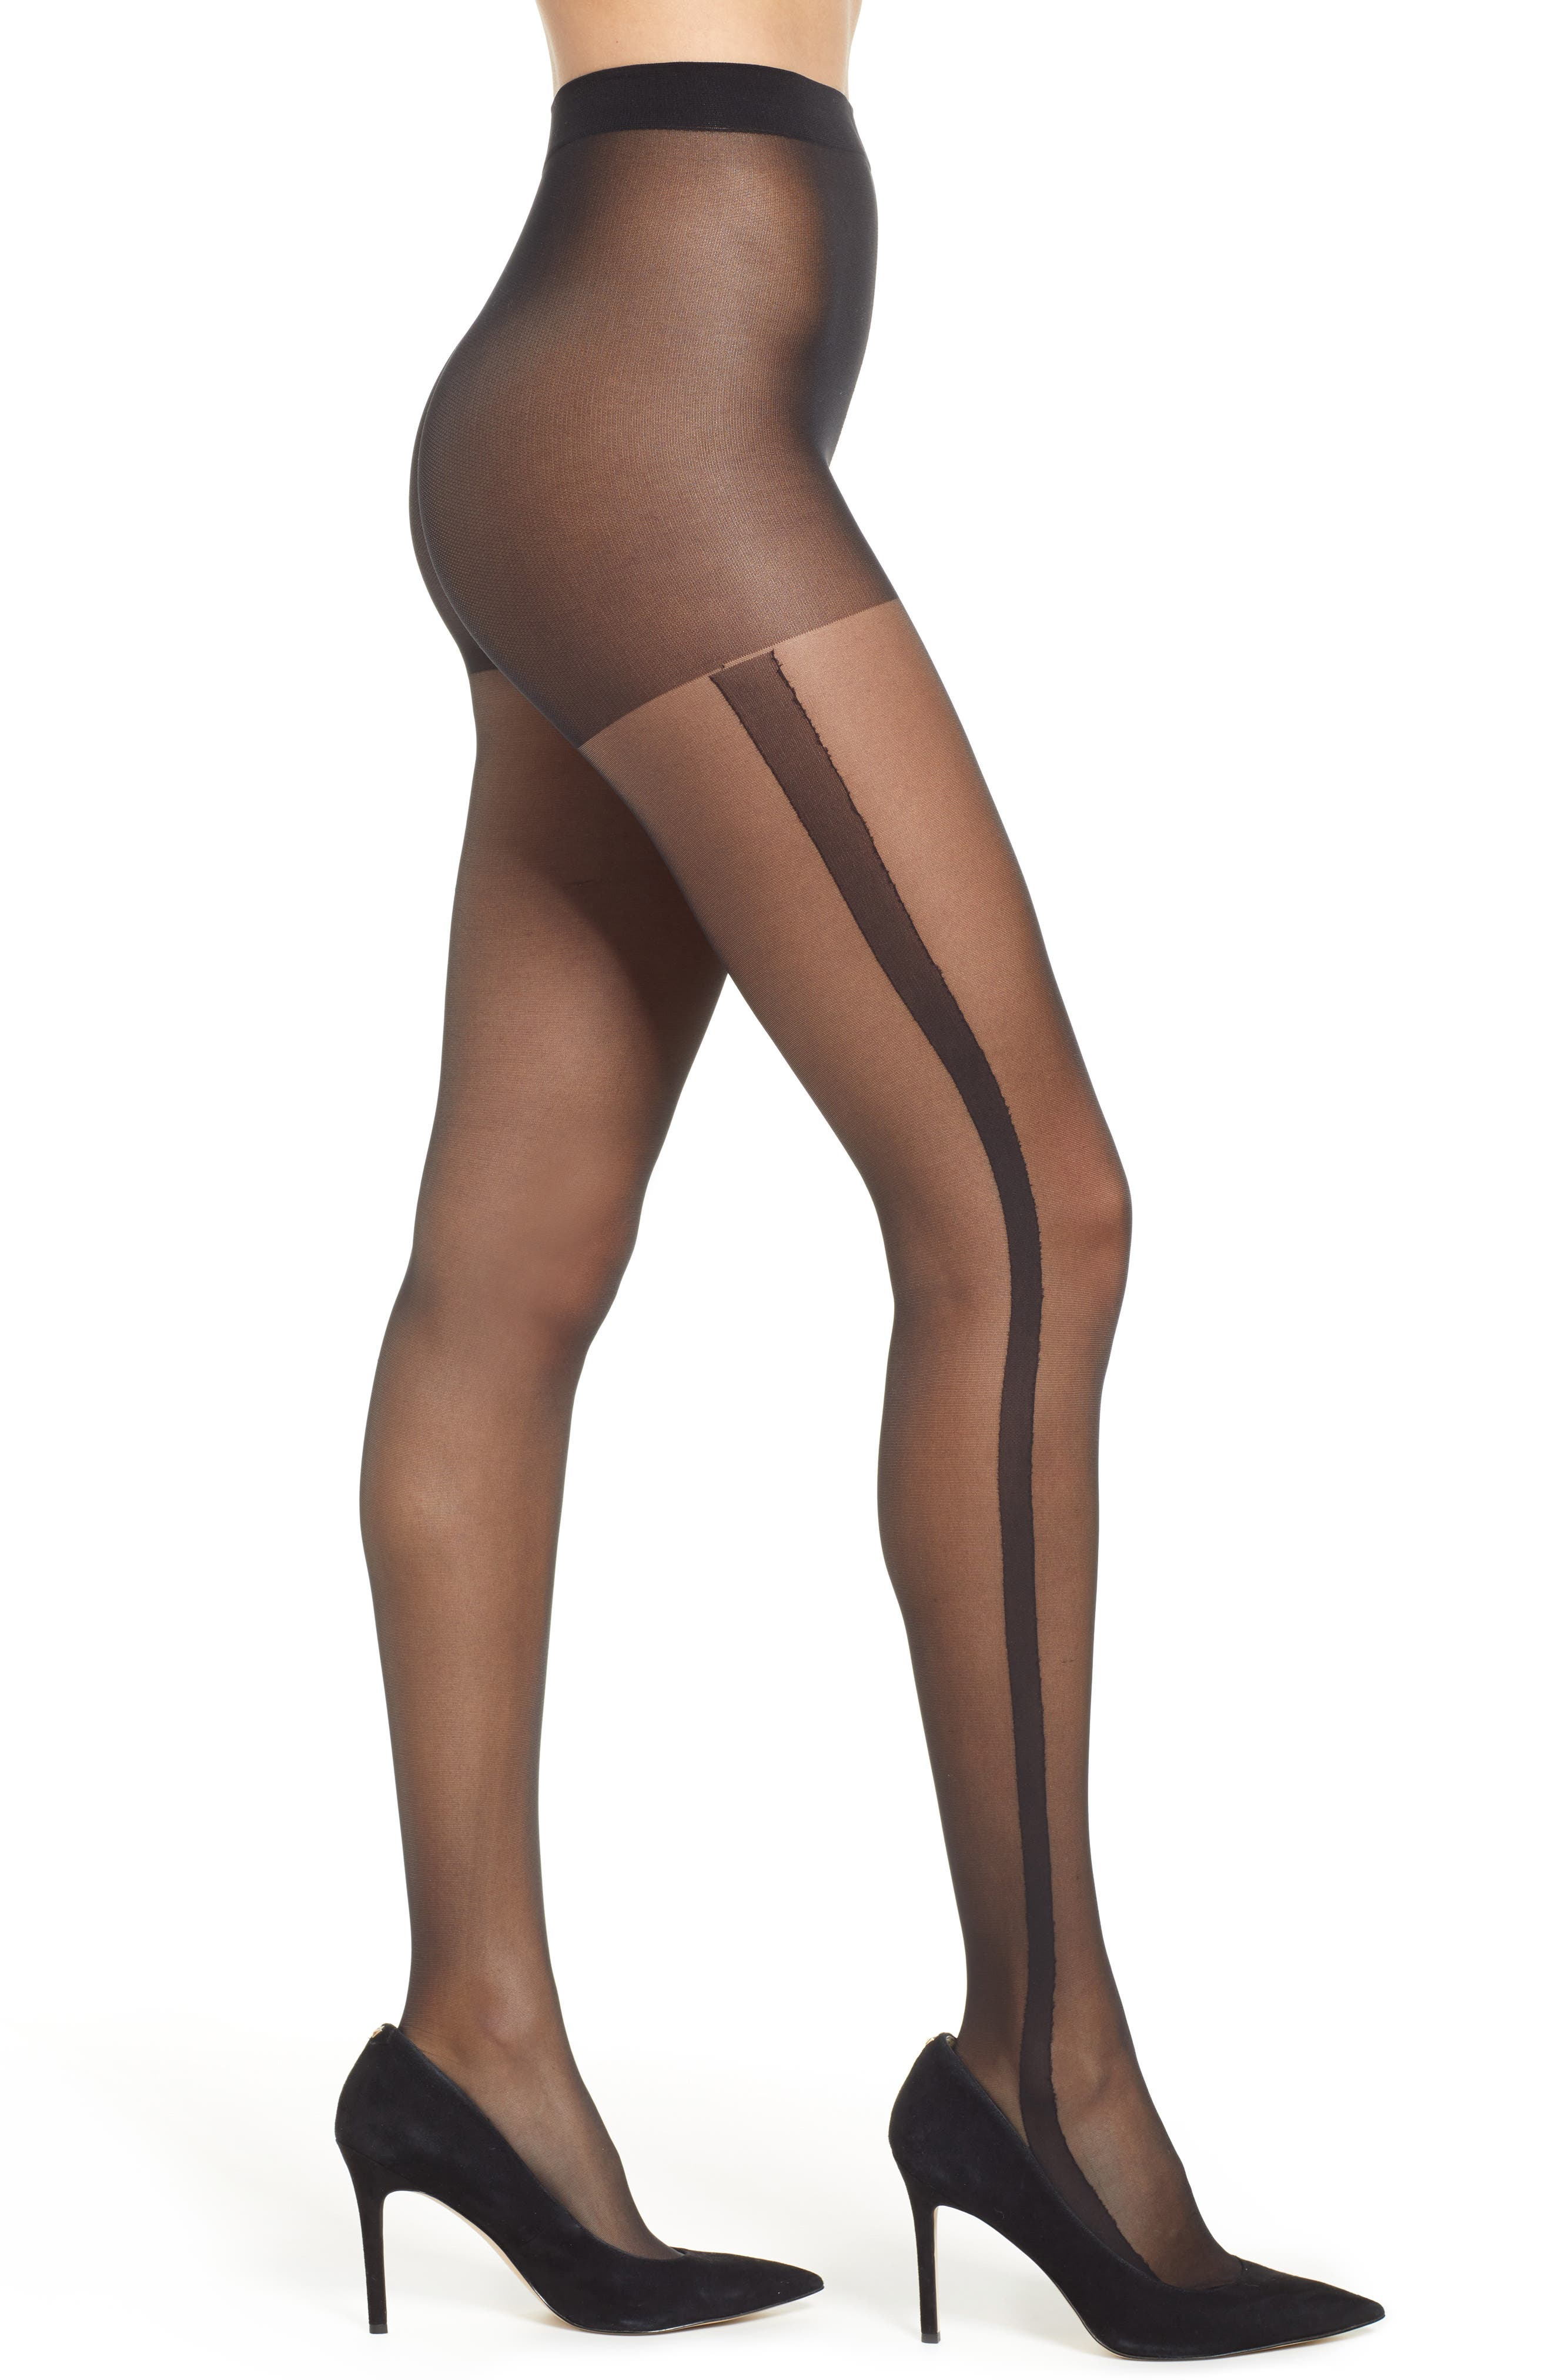 PRETTY POLLY Stripe Sheer Tights in Black